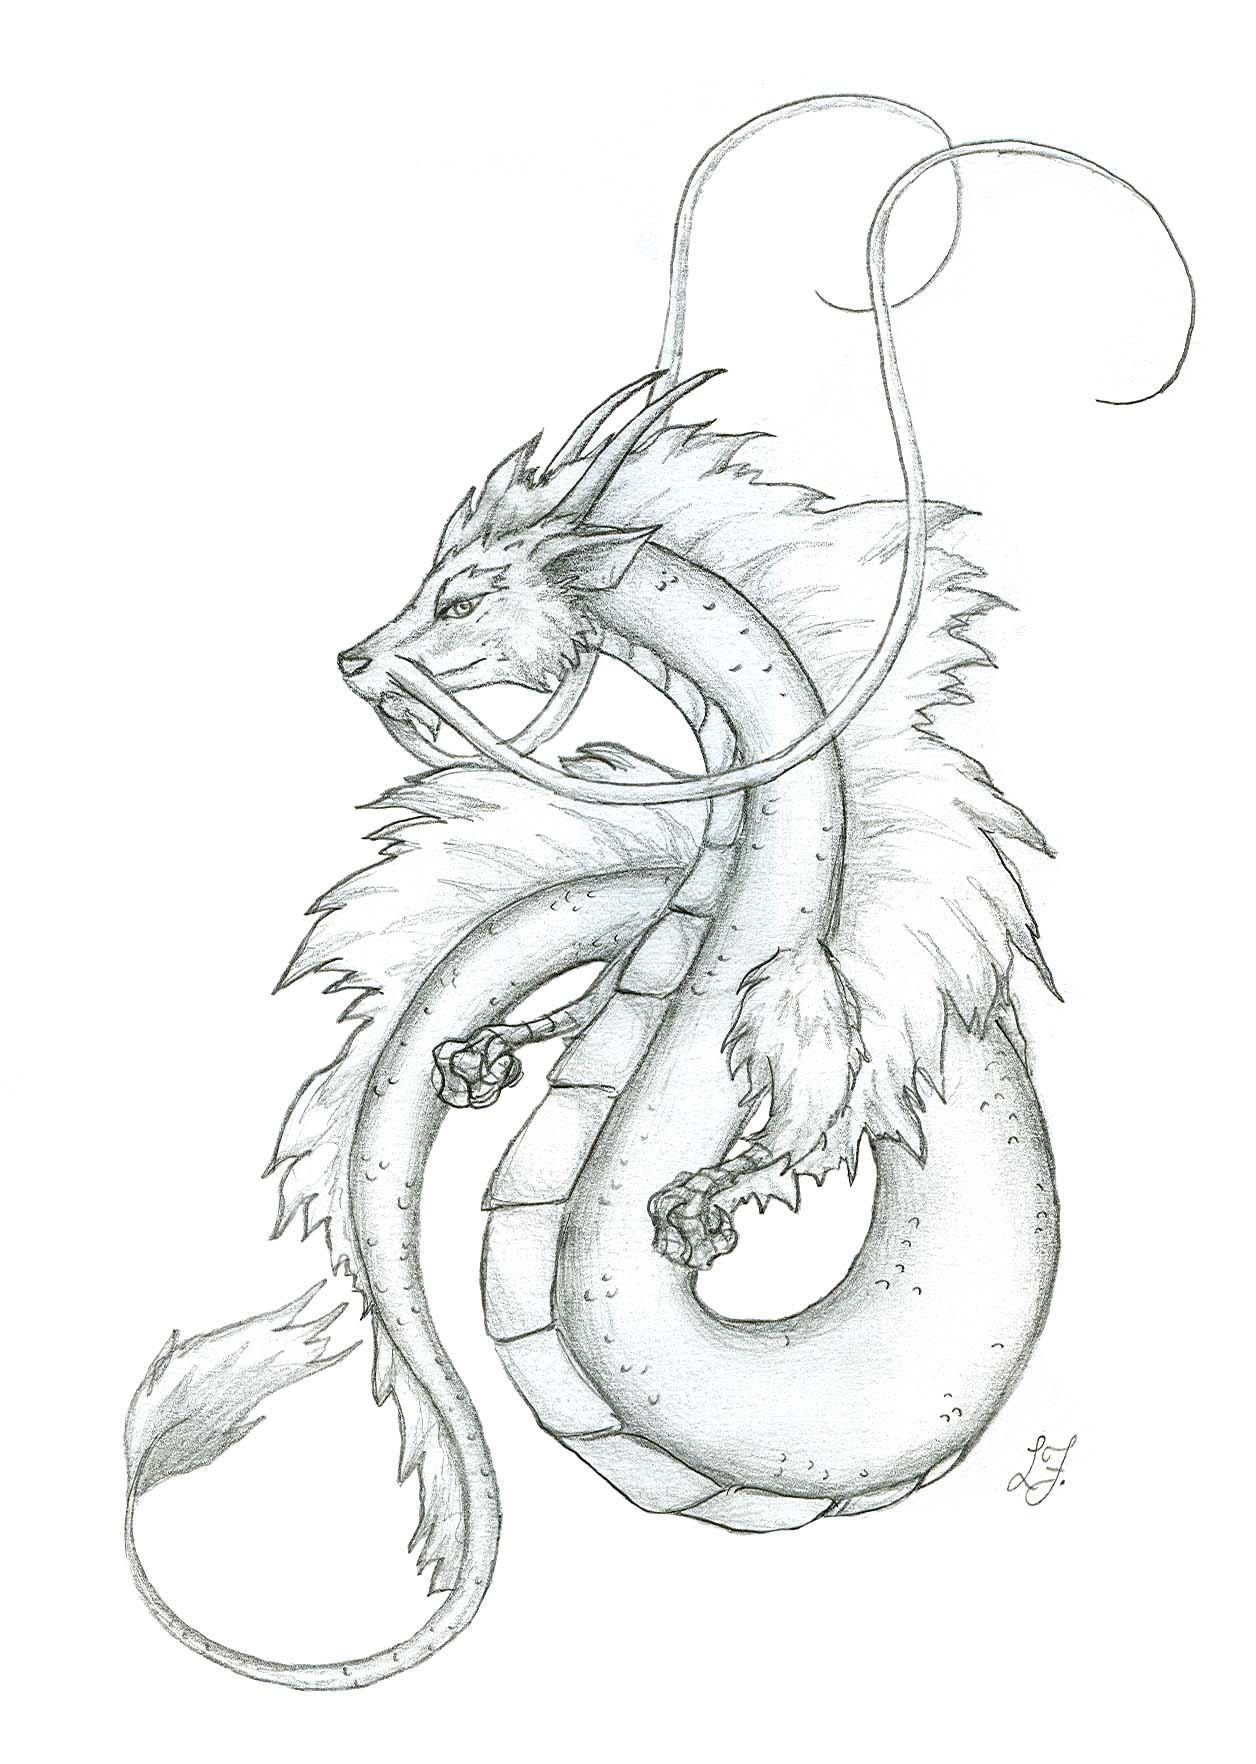 1256x1764 How To Draw A Japanese Dragon Part 3 By Ninjaweretiger. Japanese